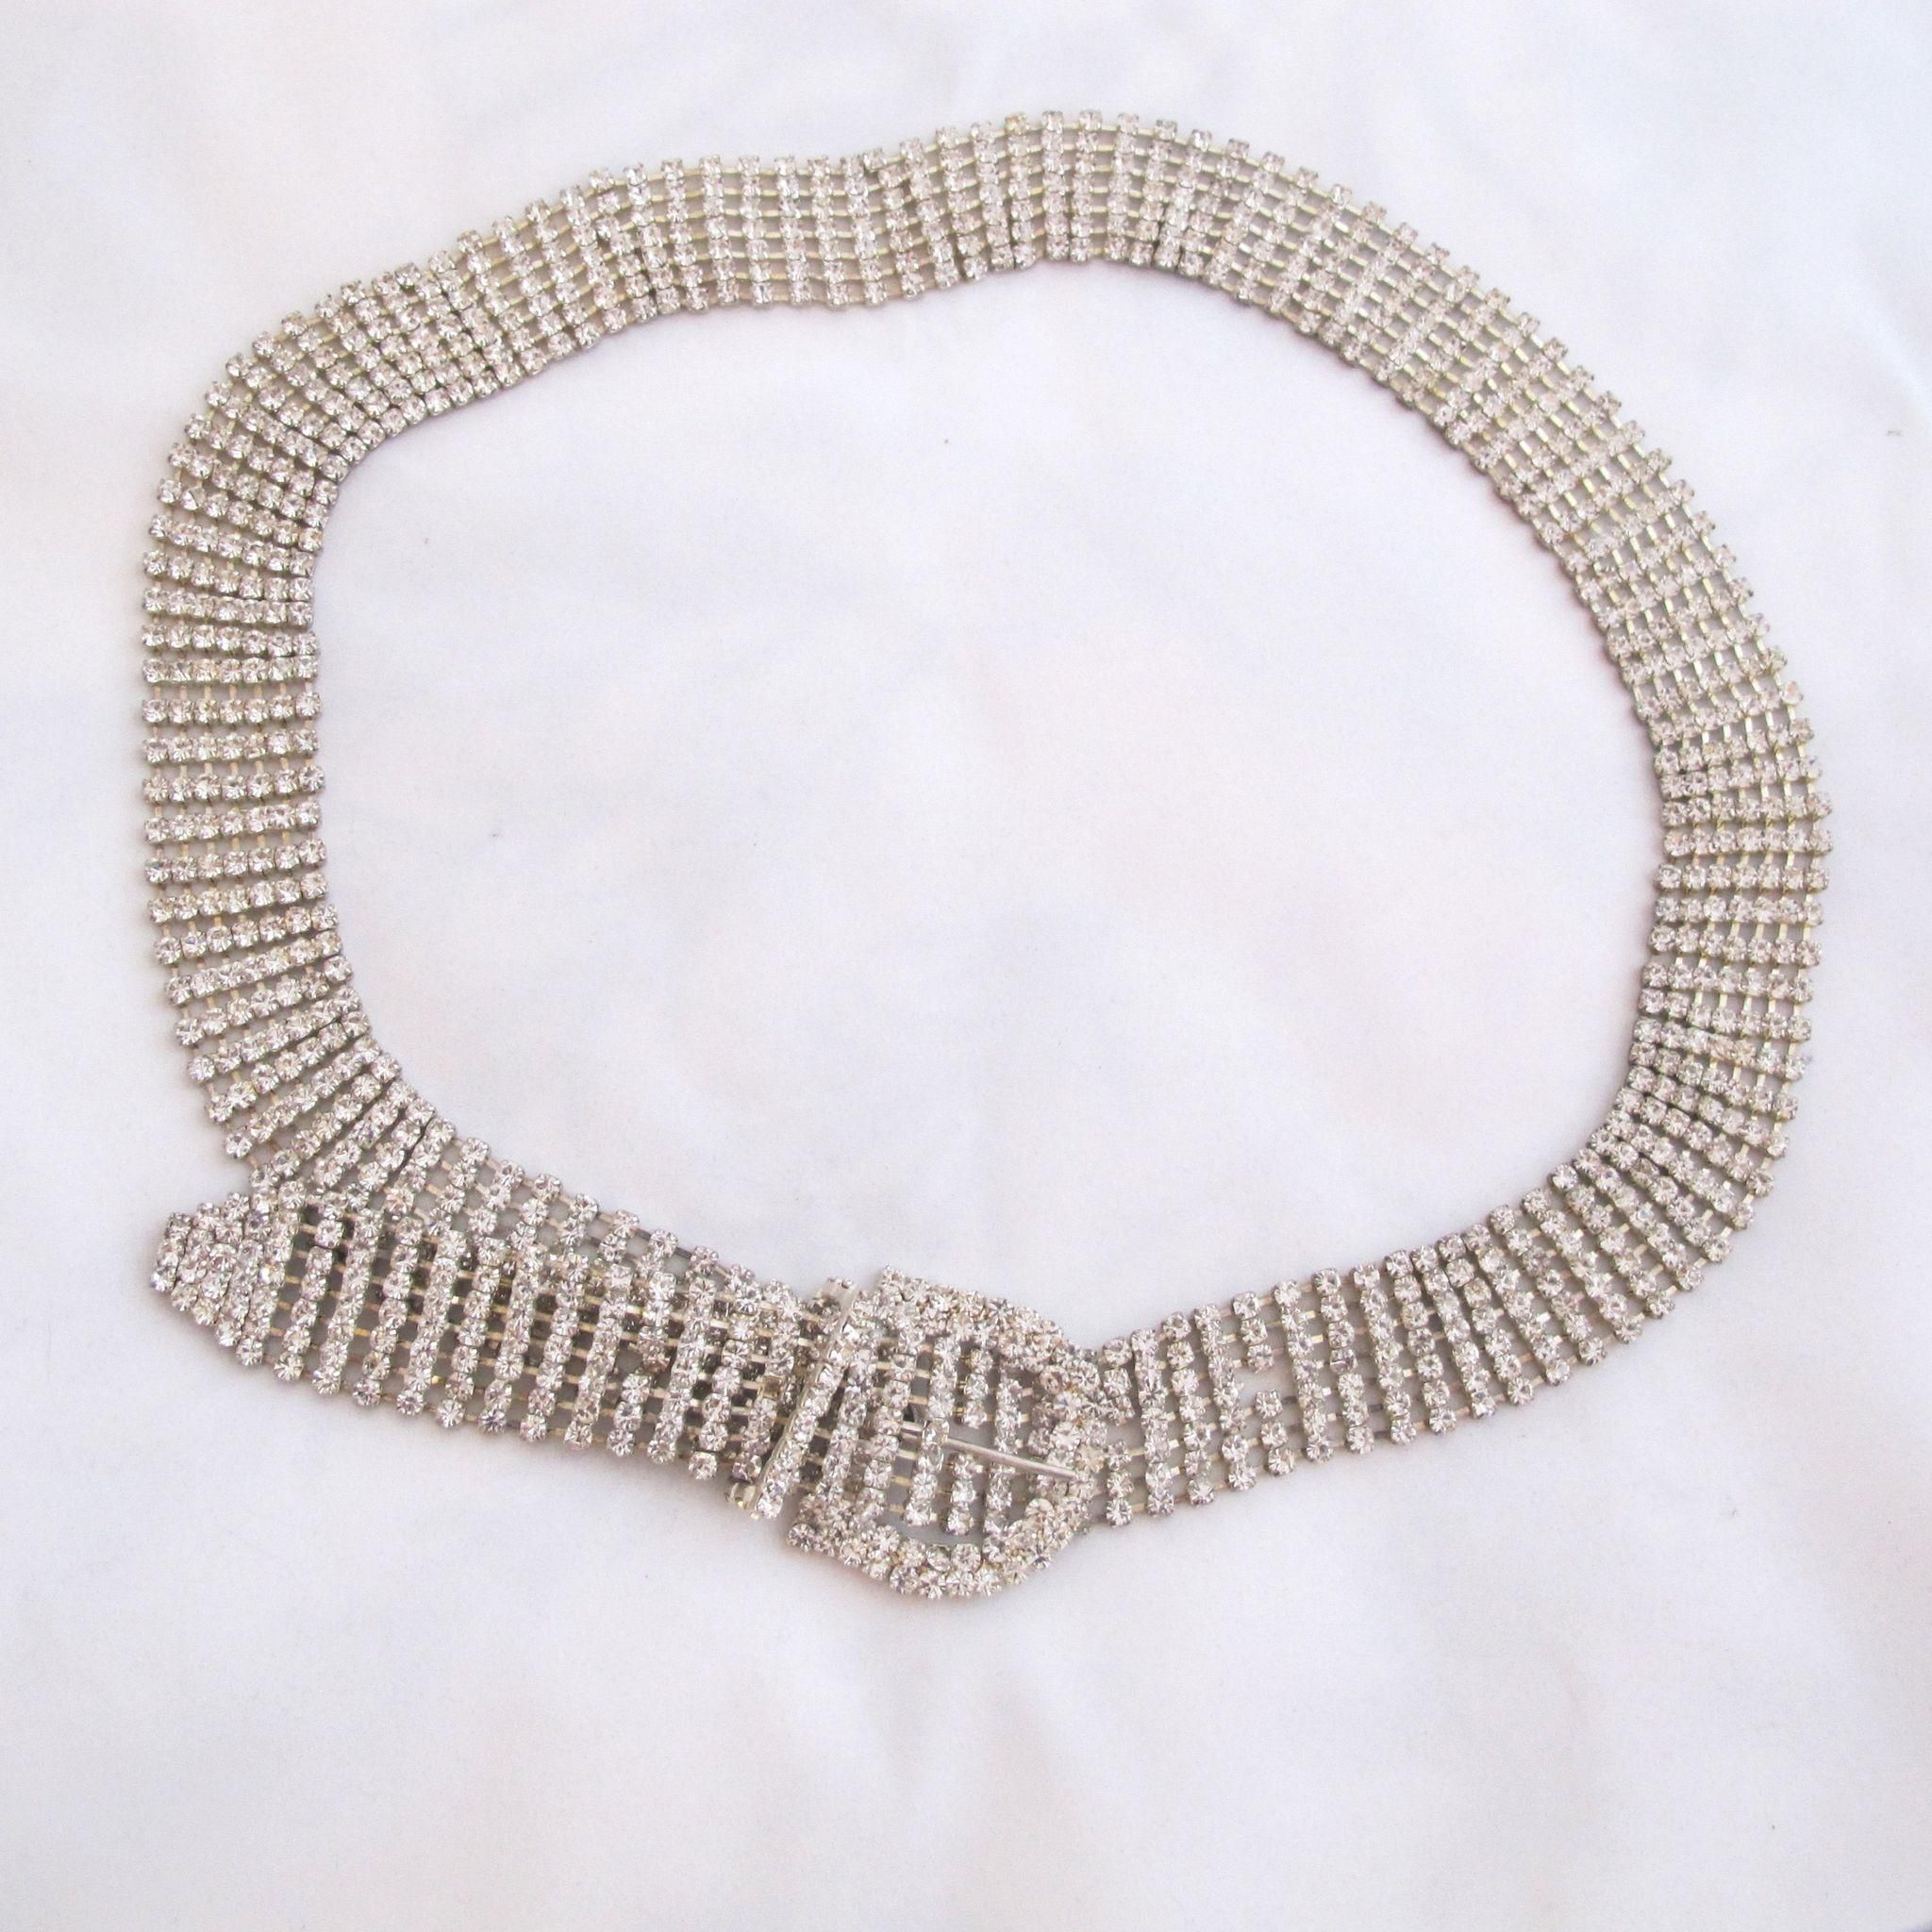 Vintage Clear Rhinestone Belt - Large